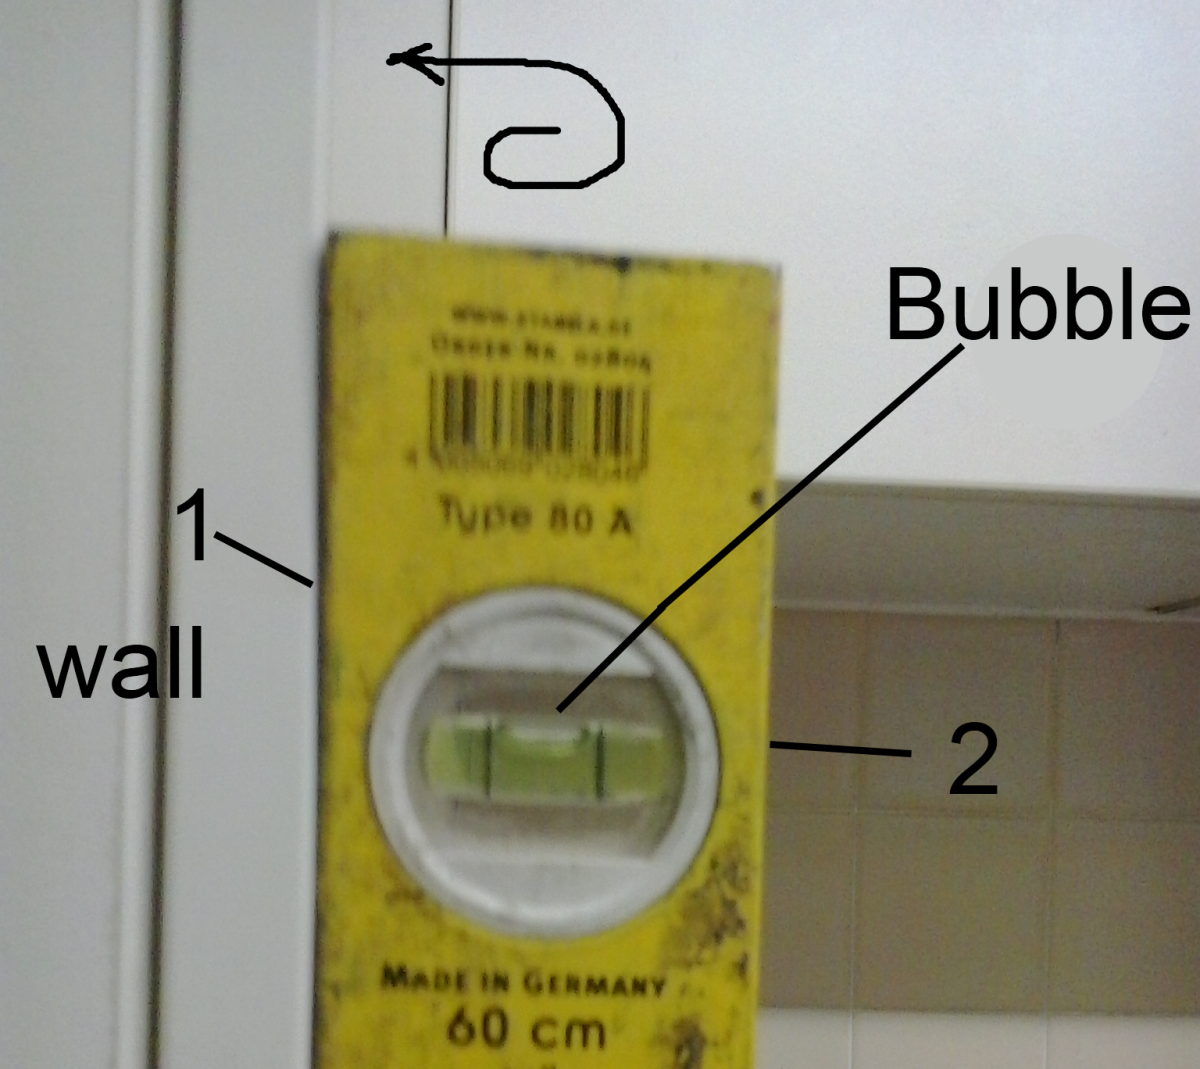 Diagram showing level against a wall. Bubble should be in the same position when the side against the wall is reversed - i.e. when either side 1 or 2 of level is against the surface being checked bubble position should be the same.